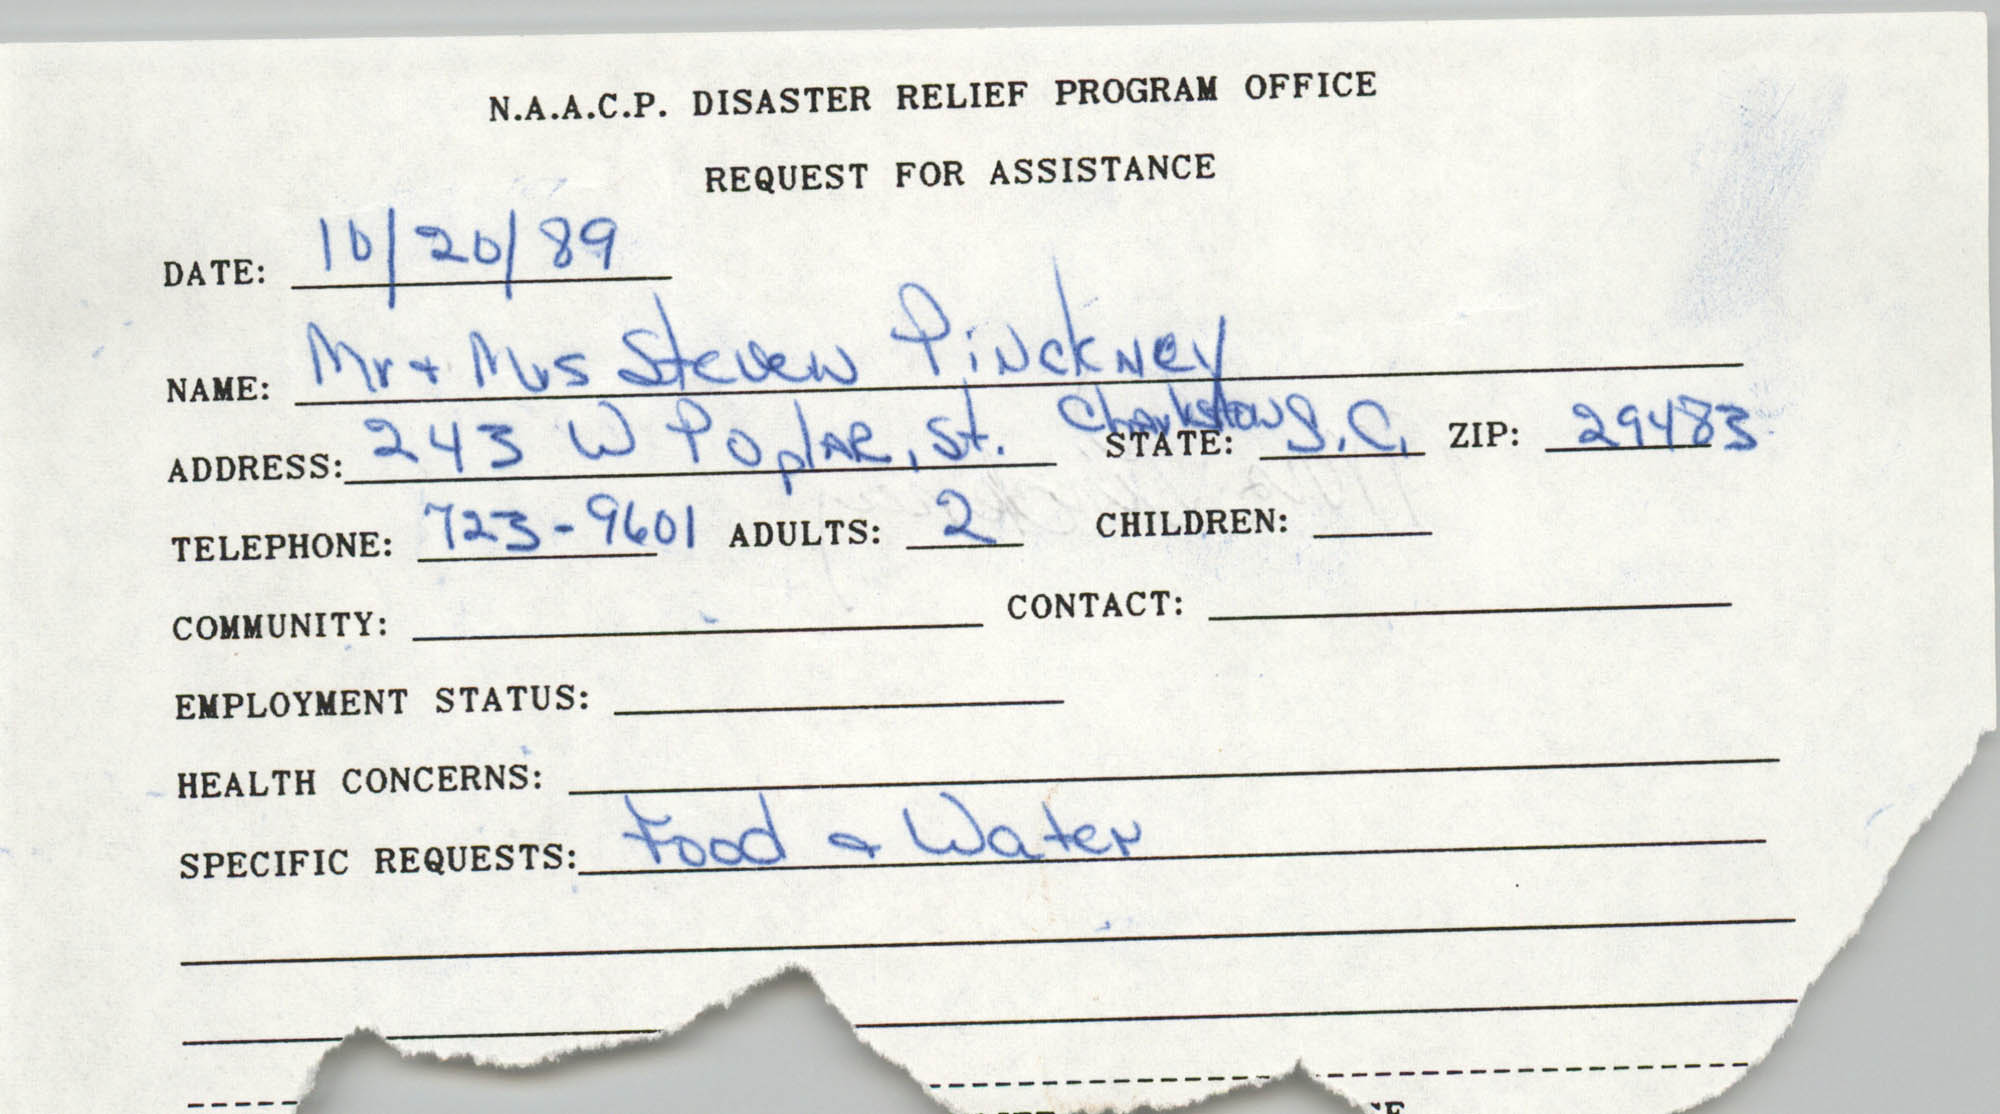 NAACP Disaster Relief Program Office, Hurricane Huge Requests for Assistance, 1989, Page 42